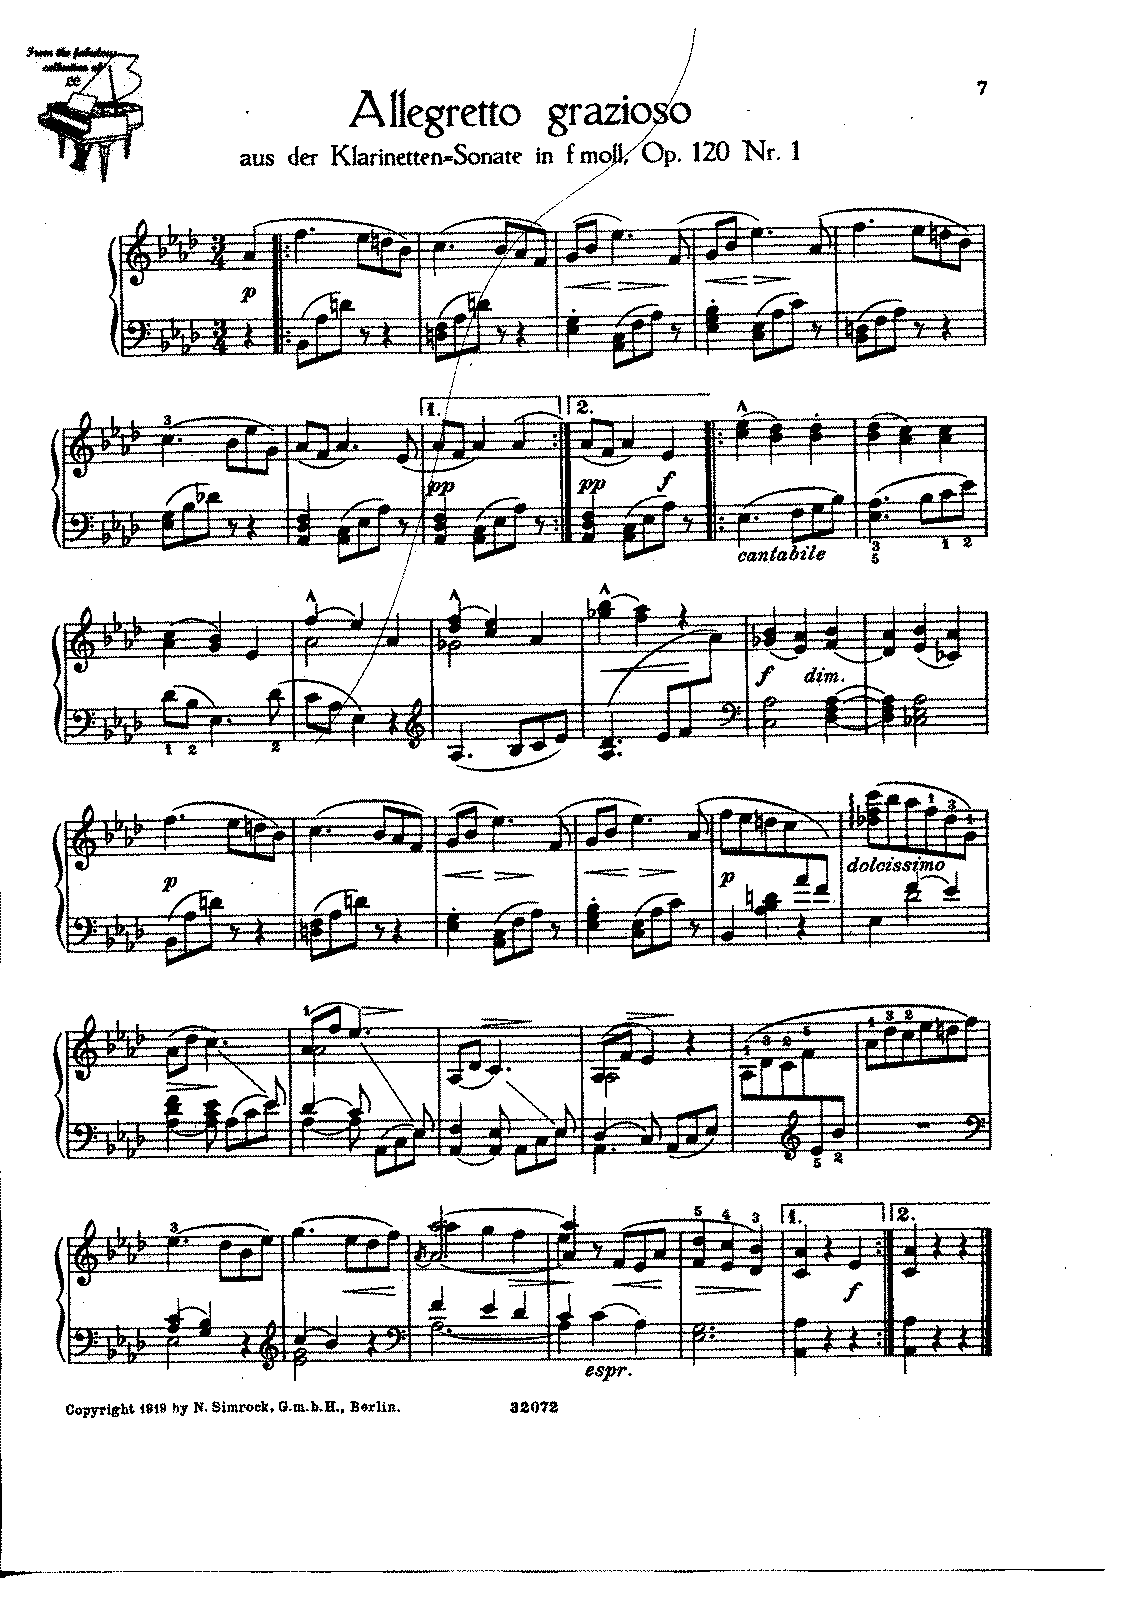 Brahms - 120 n.1 - Clarinet Sonata f - Allegretto (2H Laurischkus) new.pdf